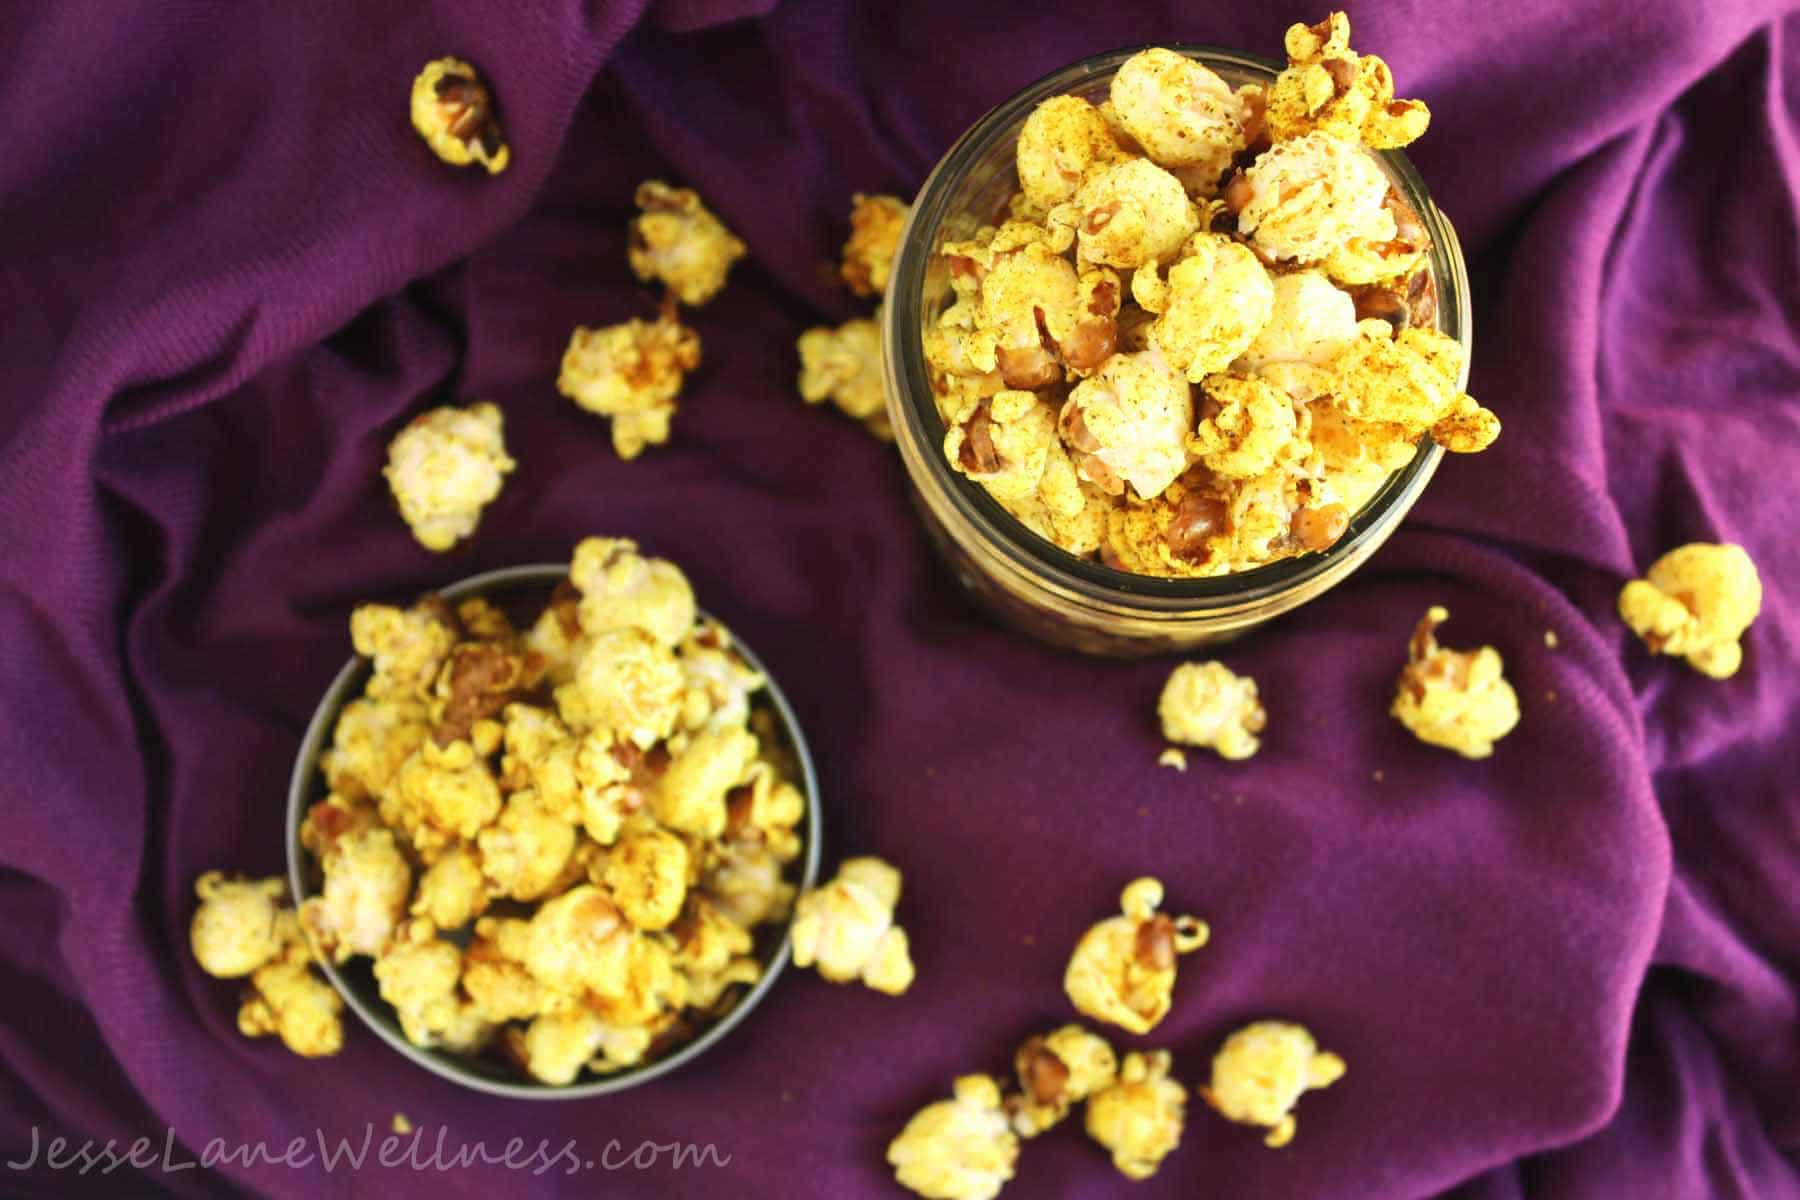 Coconut Curry Popcorn by @JesseLWellness #popcorn